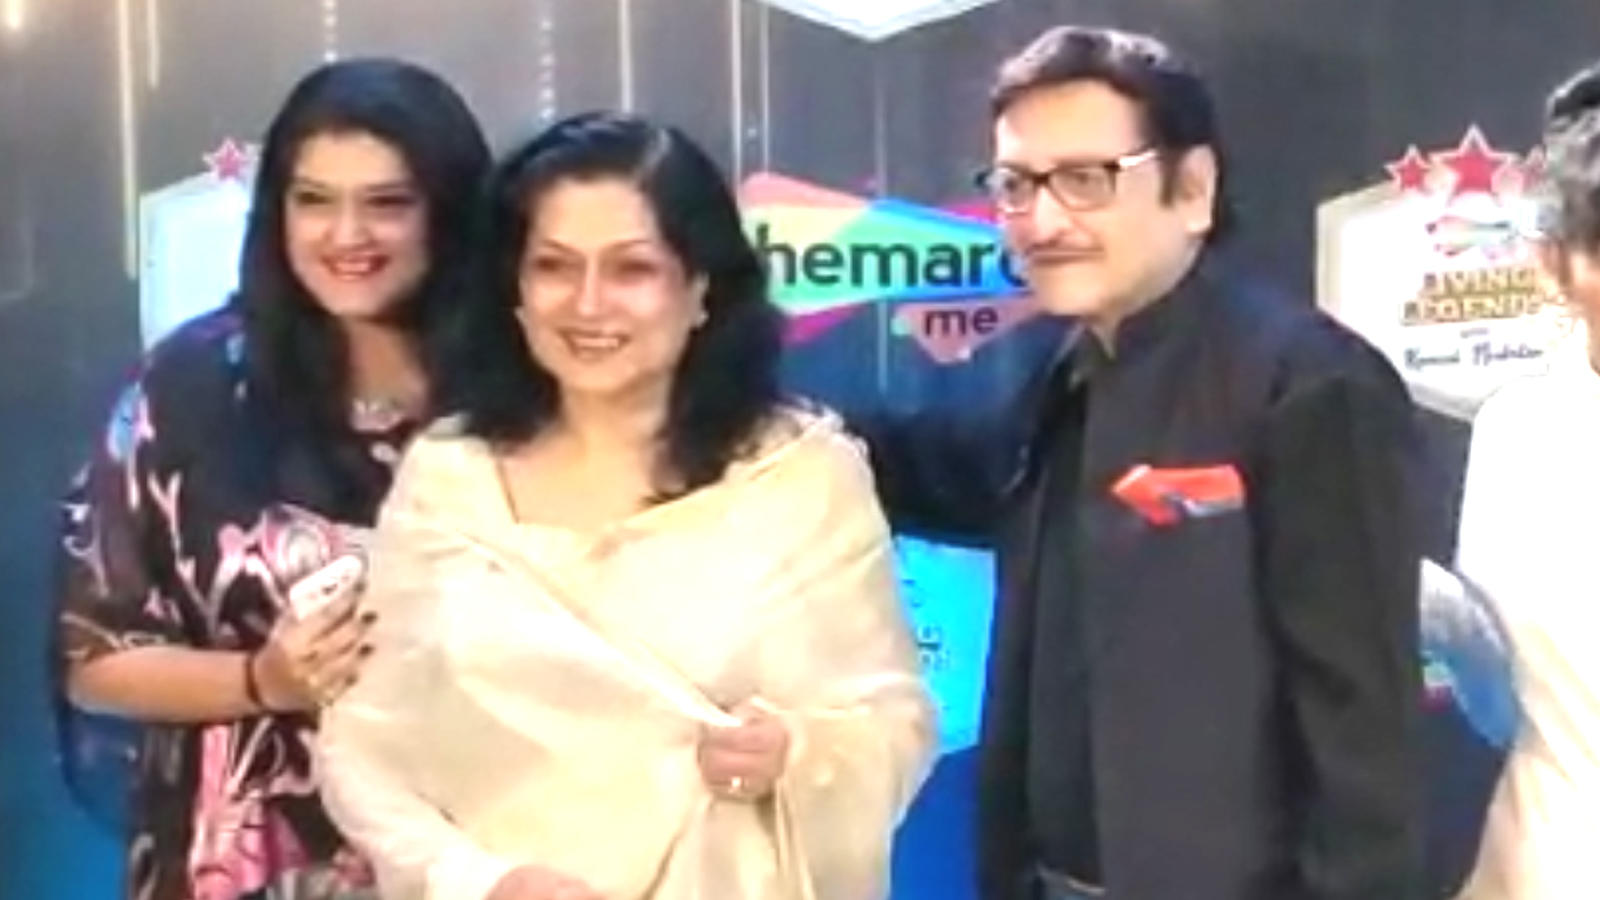 From Prem Chopra to Moushumi Chatterjee: Legendary Bollywood icons grace an event in Mumbai